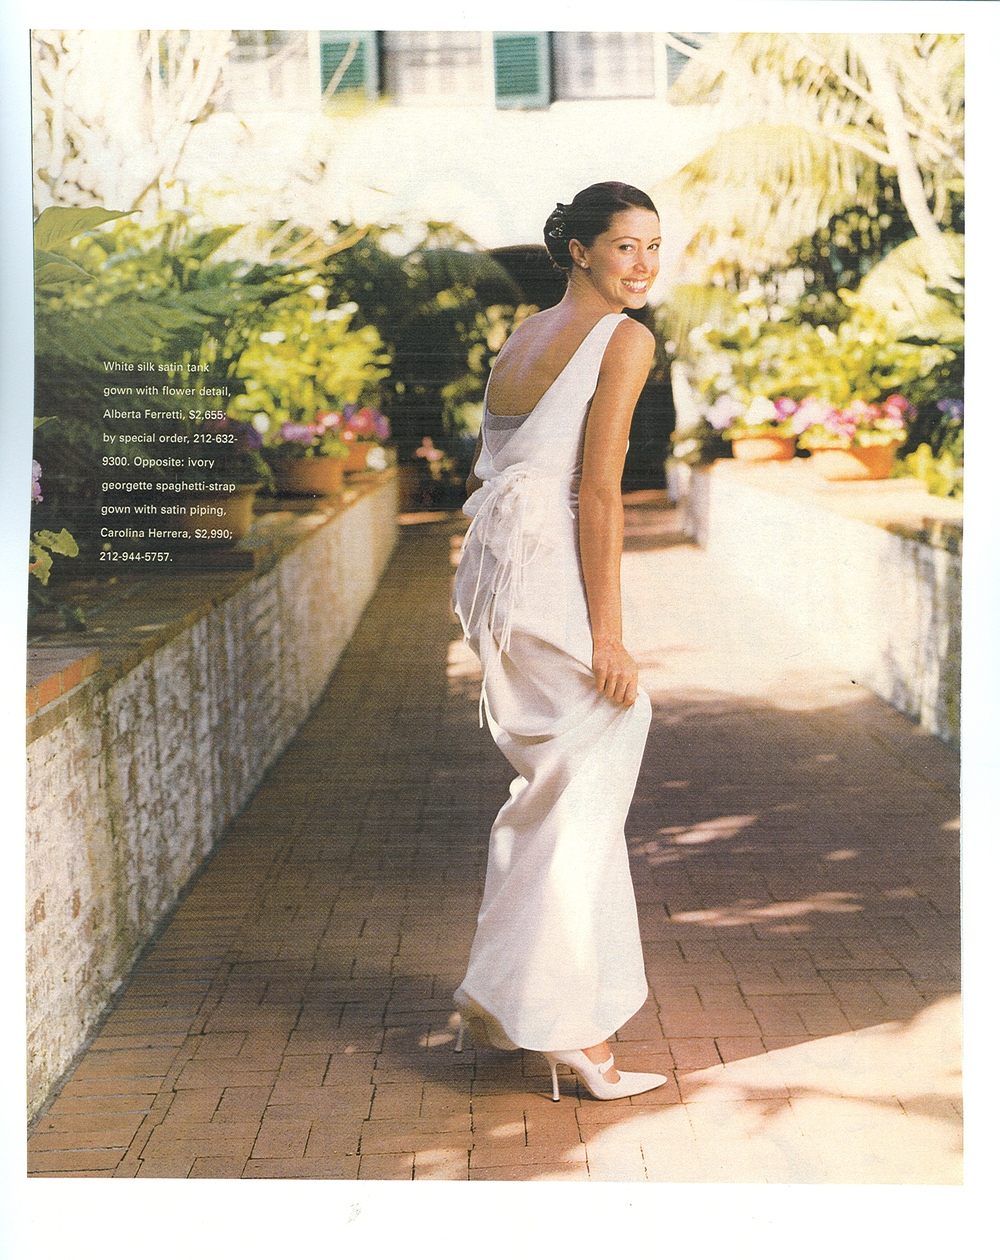 SE_InStyle Weddings_Summer 2002_6.jpg